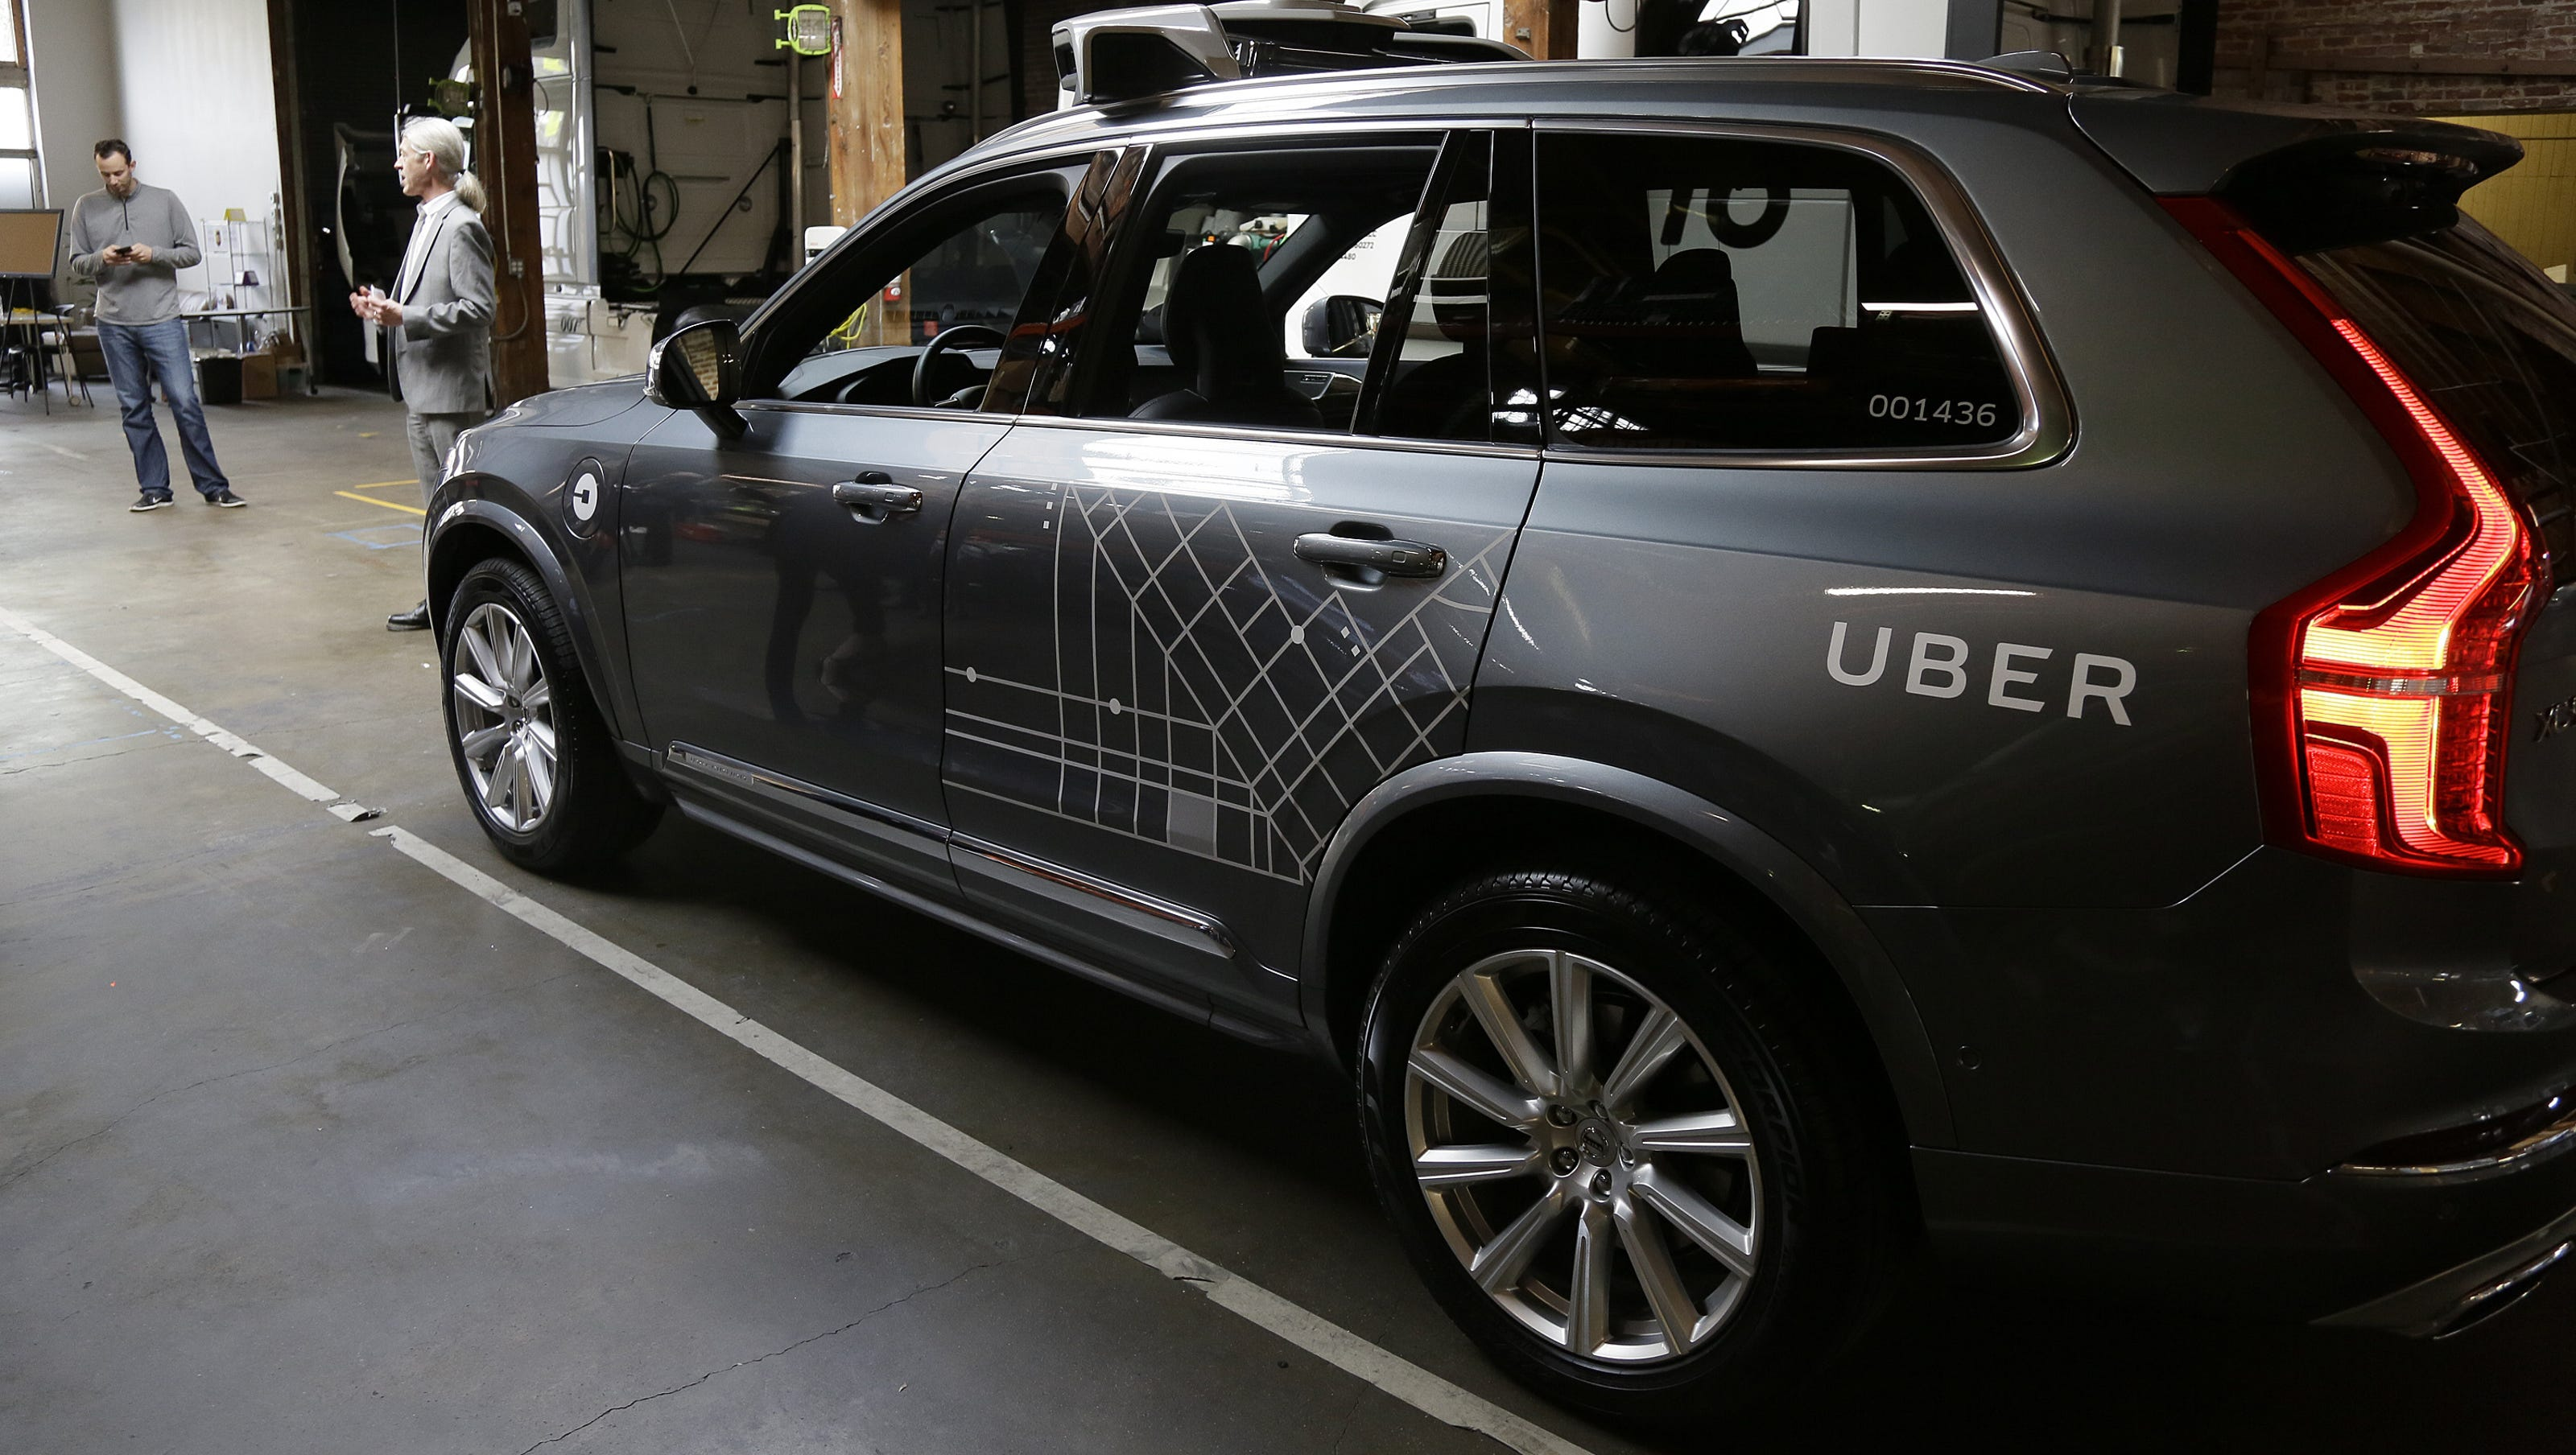 uber to close self-driving operations in arizona after fatal crash